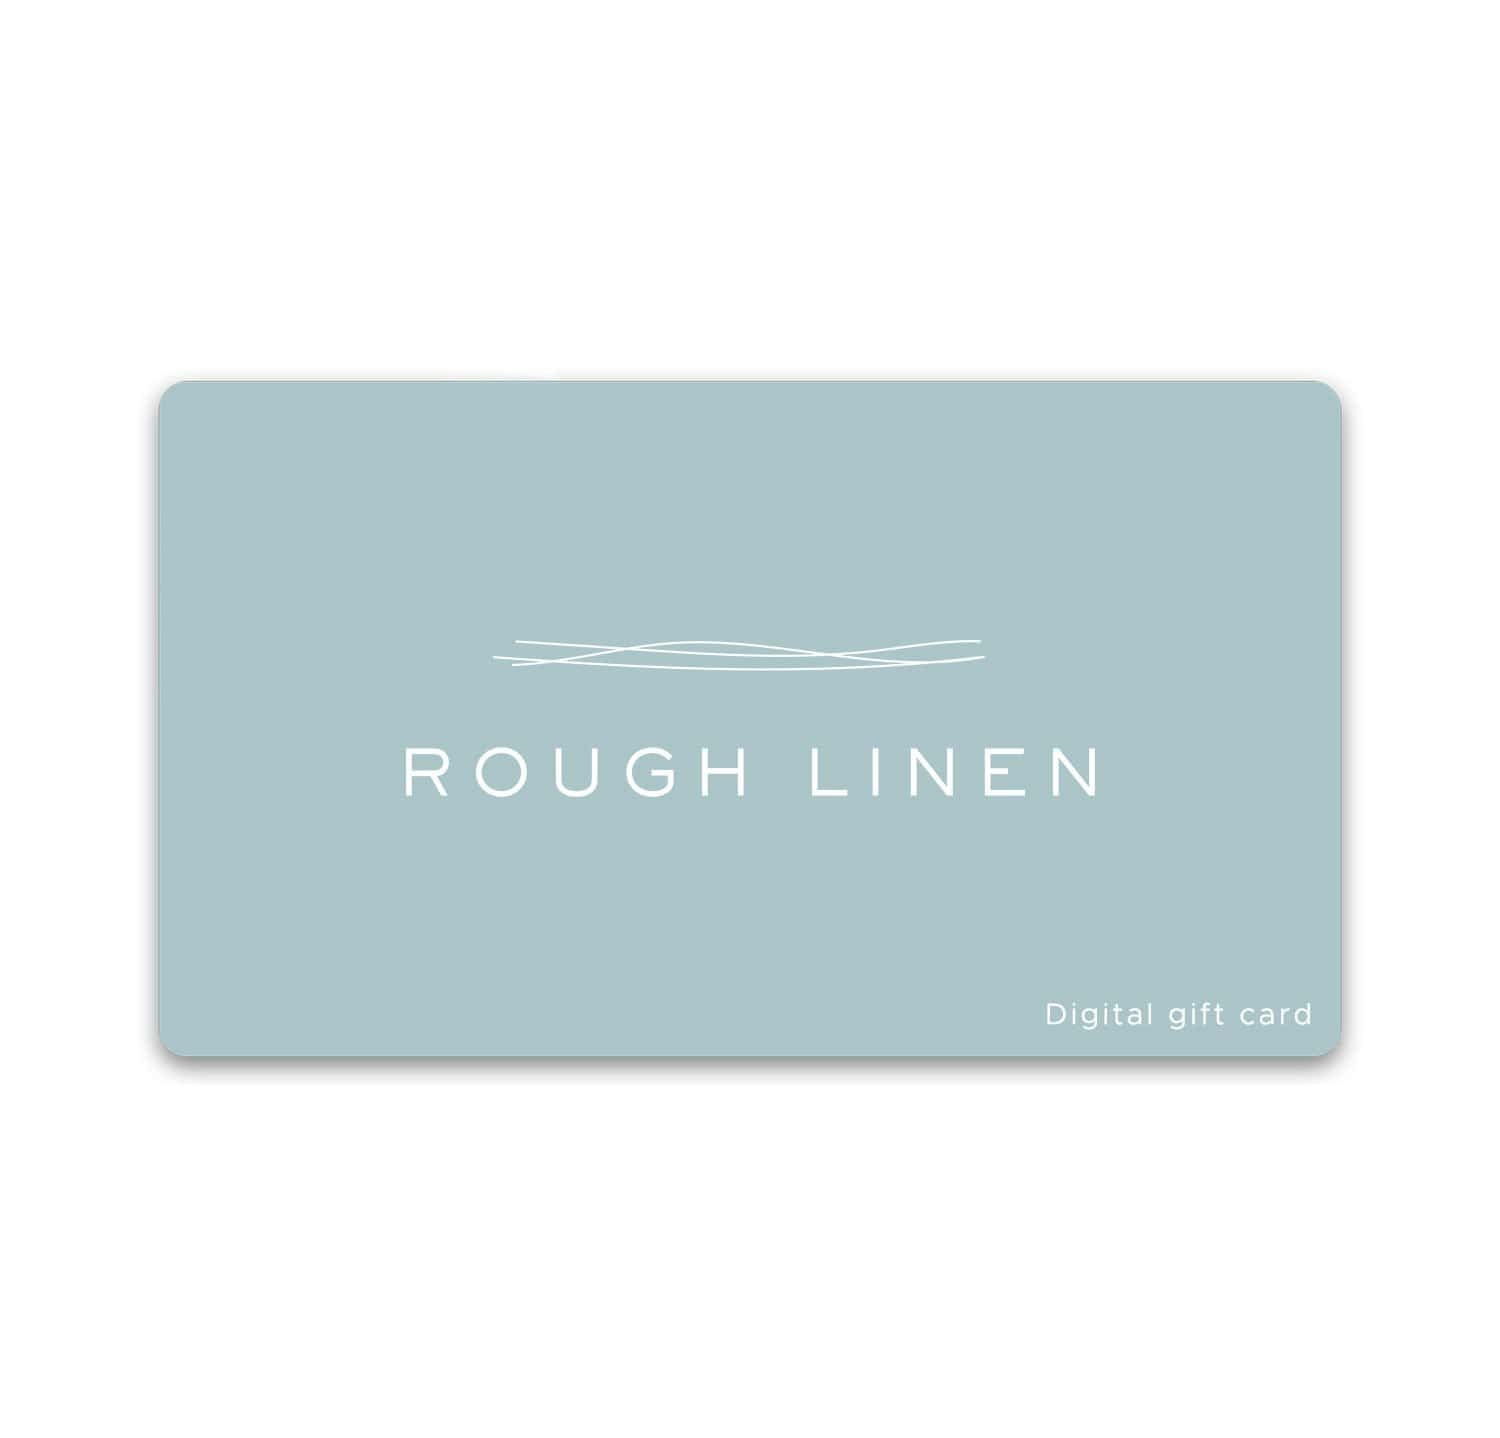 Rough Linen digital online gift card